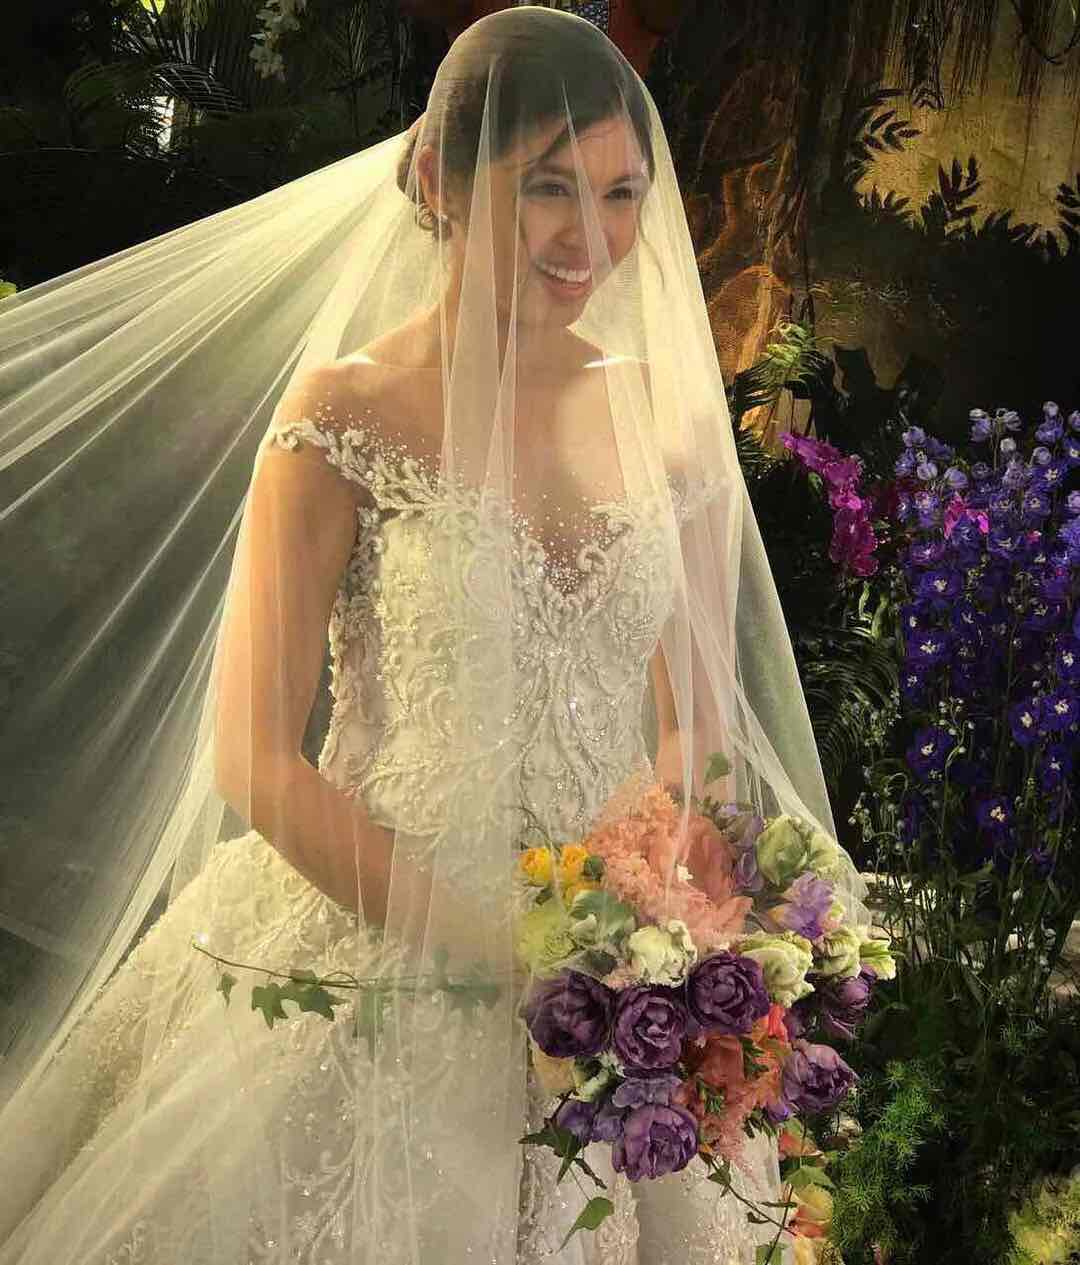 Maine Mendoza in a wedding dress